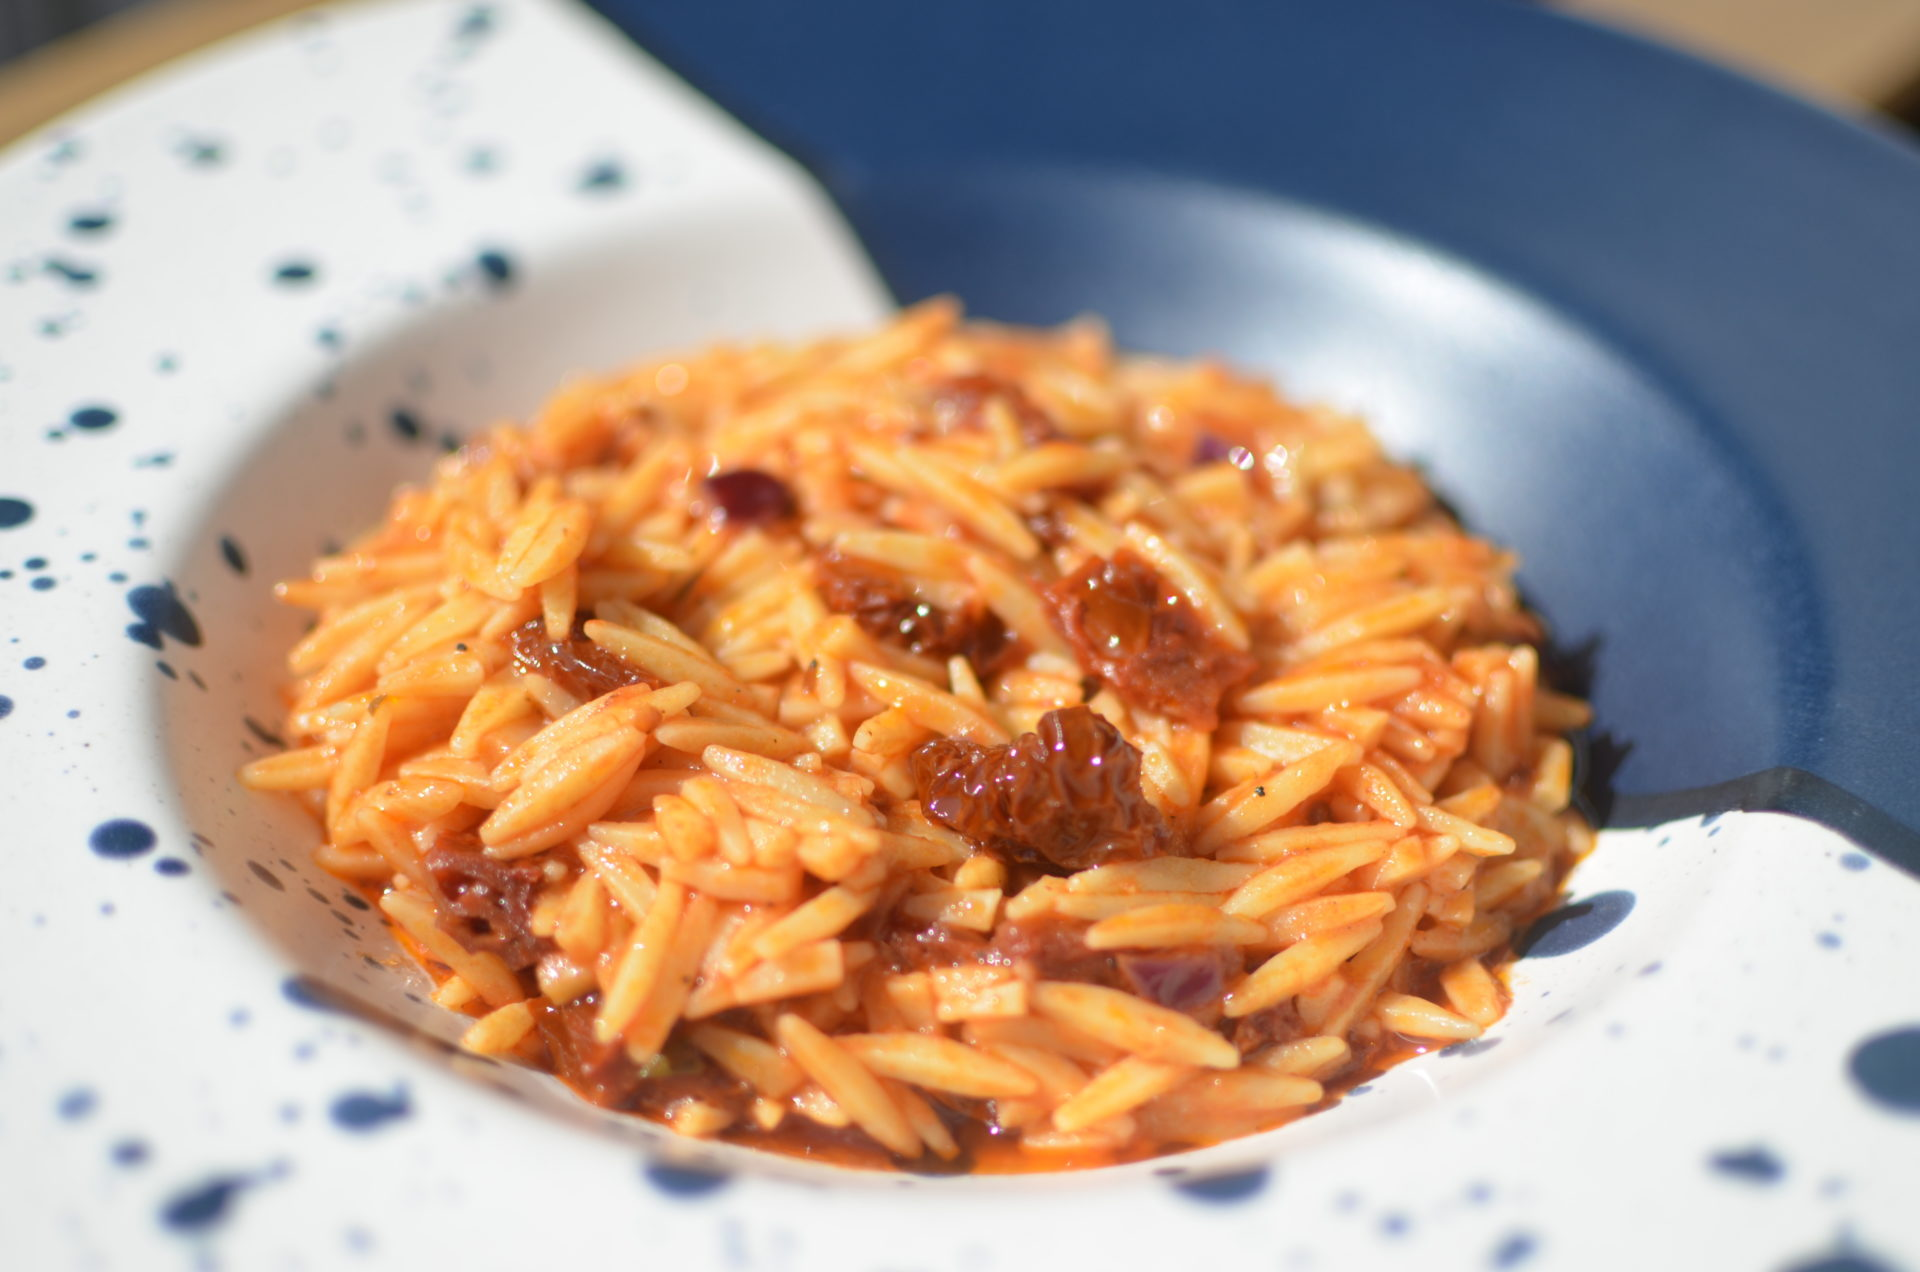 Youvetsi with sun-dried tomatoes and Melicloro